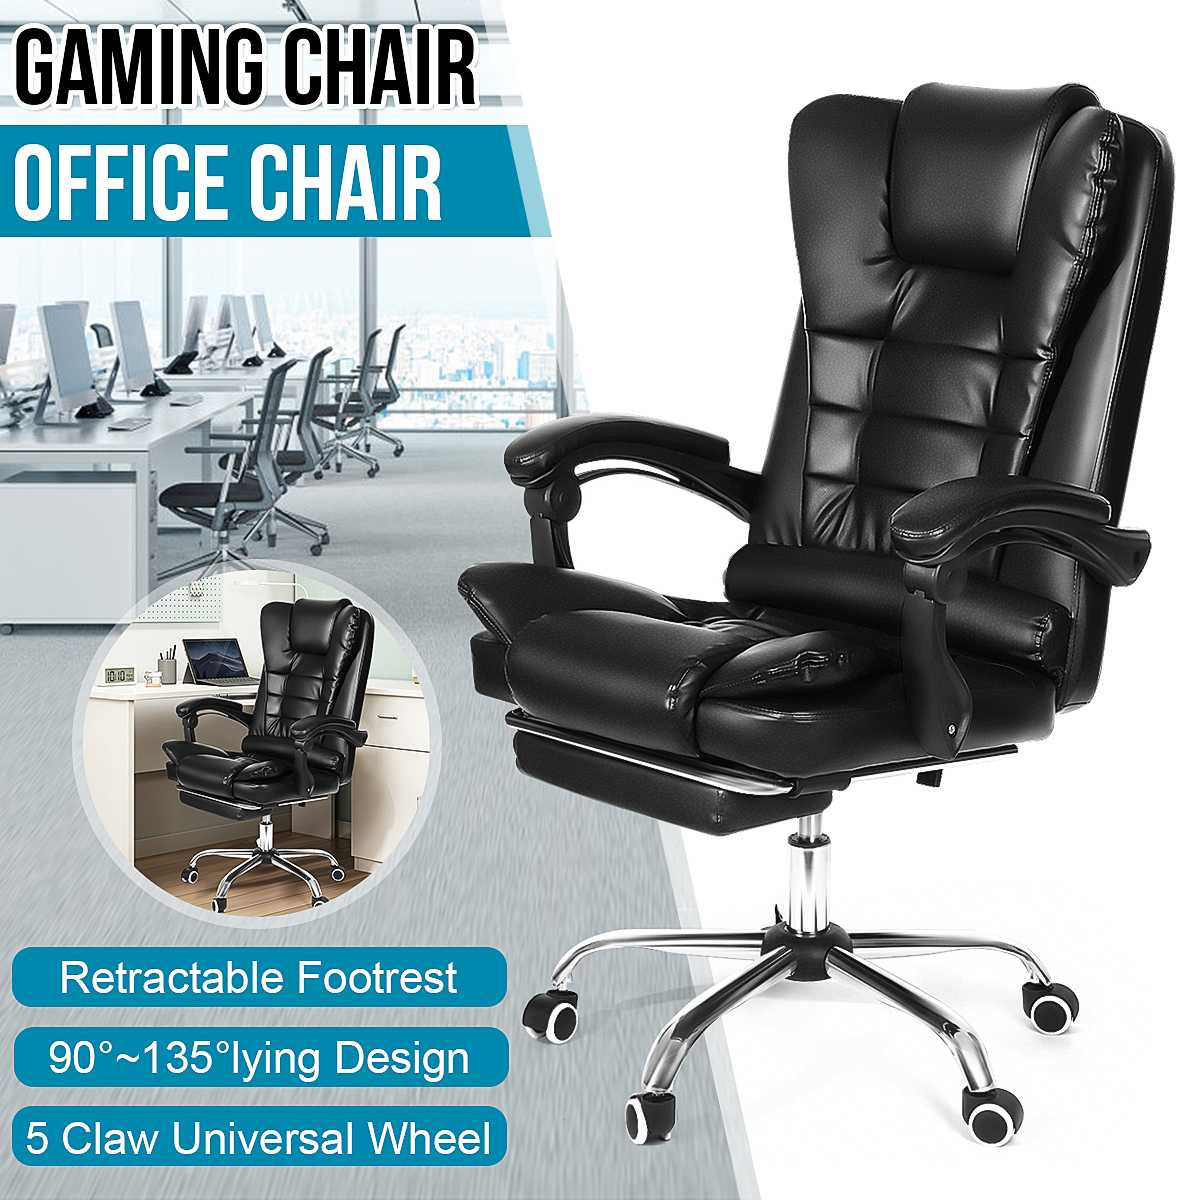 H2e95d6bf410f445d802b59a7d2bebf7e6 - Office Chair WCG Computer Gaming Chair Reclining Armchair with Footrest Internet Cafe Gamer Chair Office Furniture Pink Chair